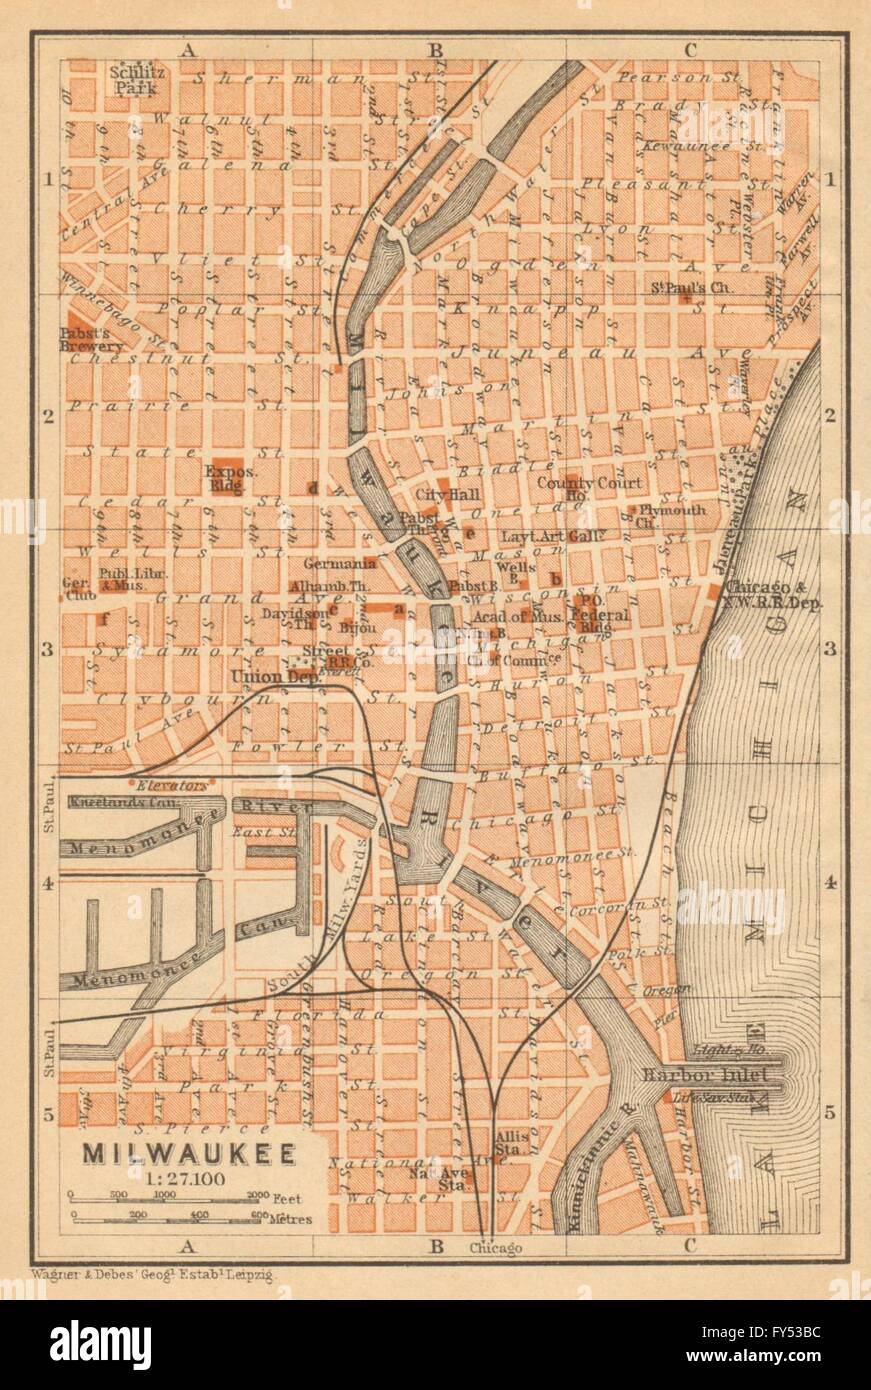 MILWAUKEE antique town city plan. Wisconsin. BAEDEKER, 1904 antique on